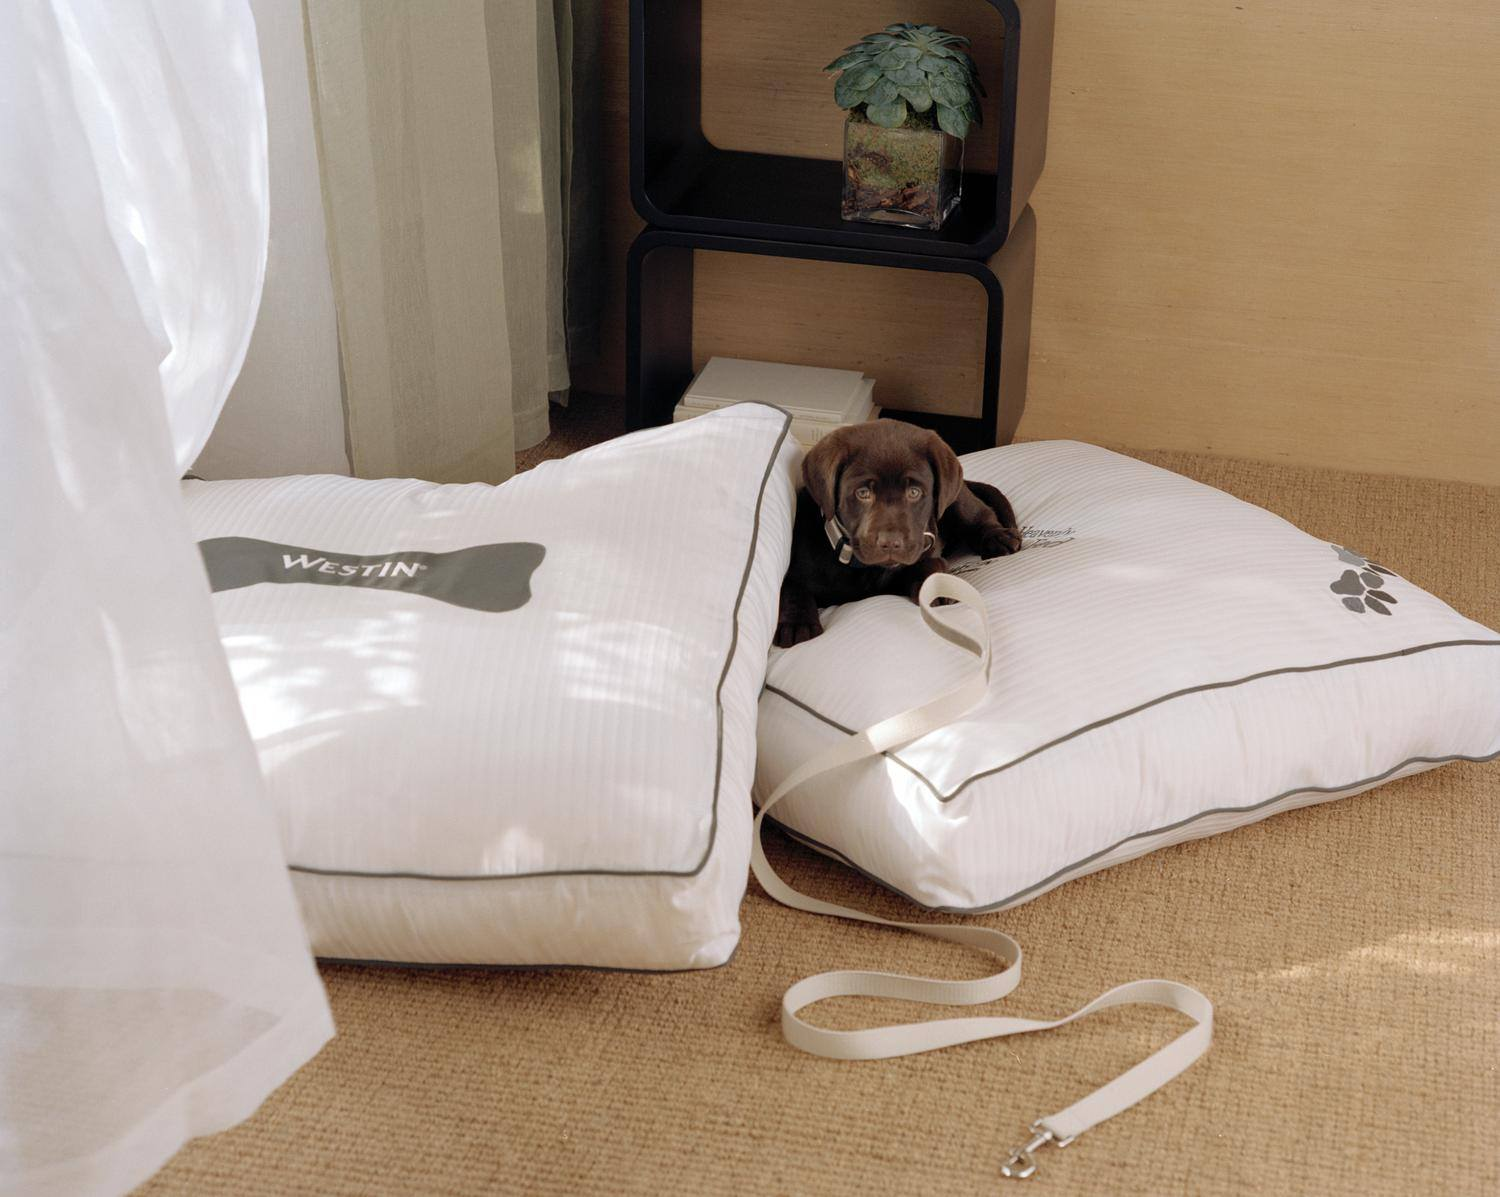 Adopt A Dog And Receive A Complimentary Room Upgrade At The Westin